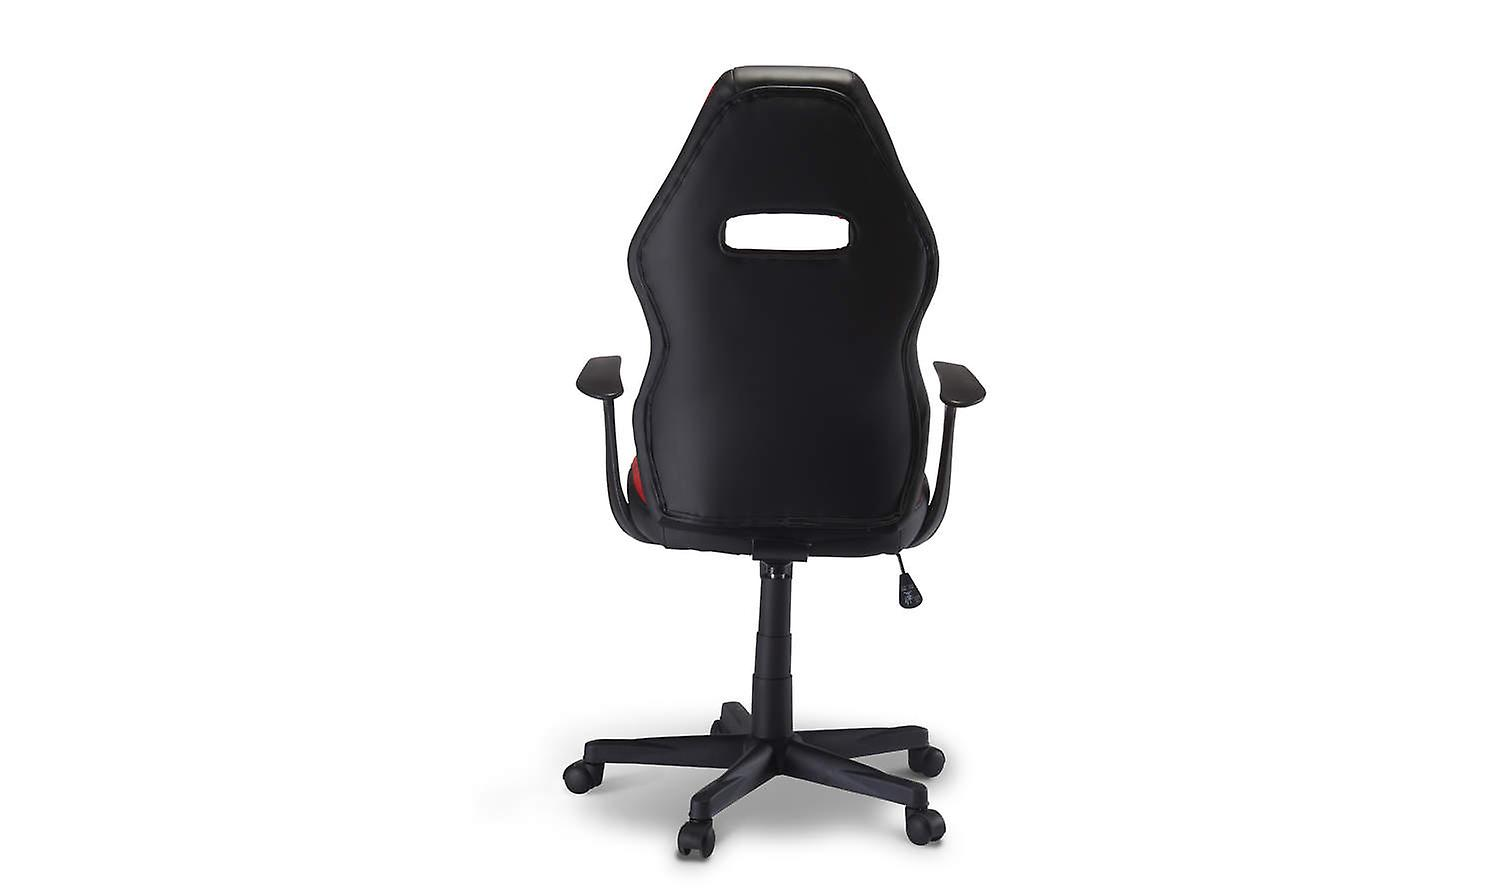 Furnhouse Space Office Chair, Red/Black, 65x65x110-120 cm